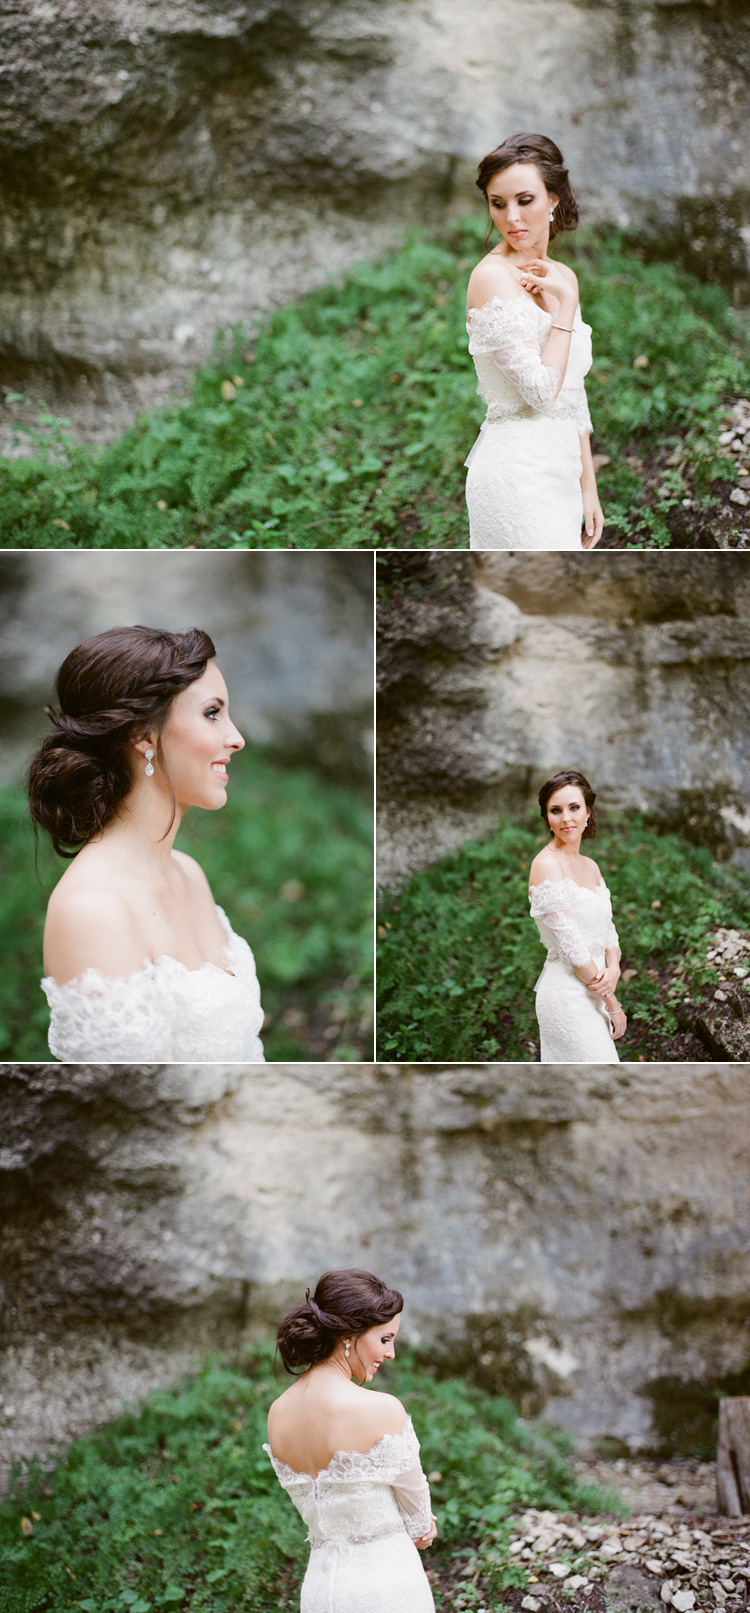 Wimberley-Bridal-Photo-3.jpg